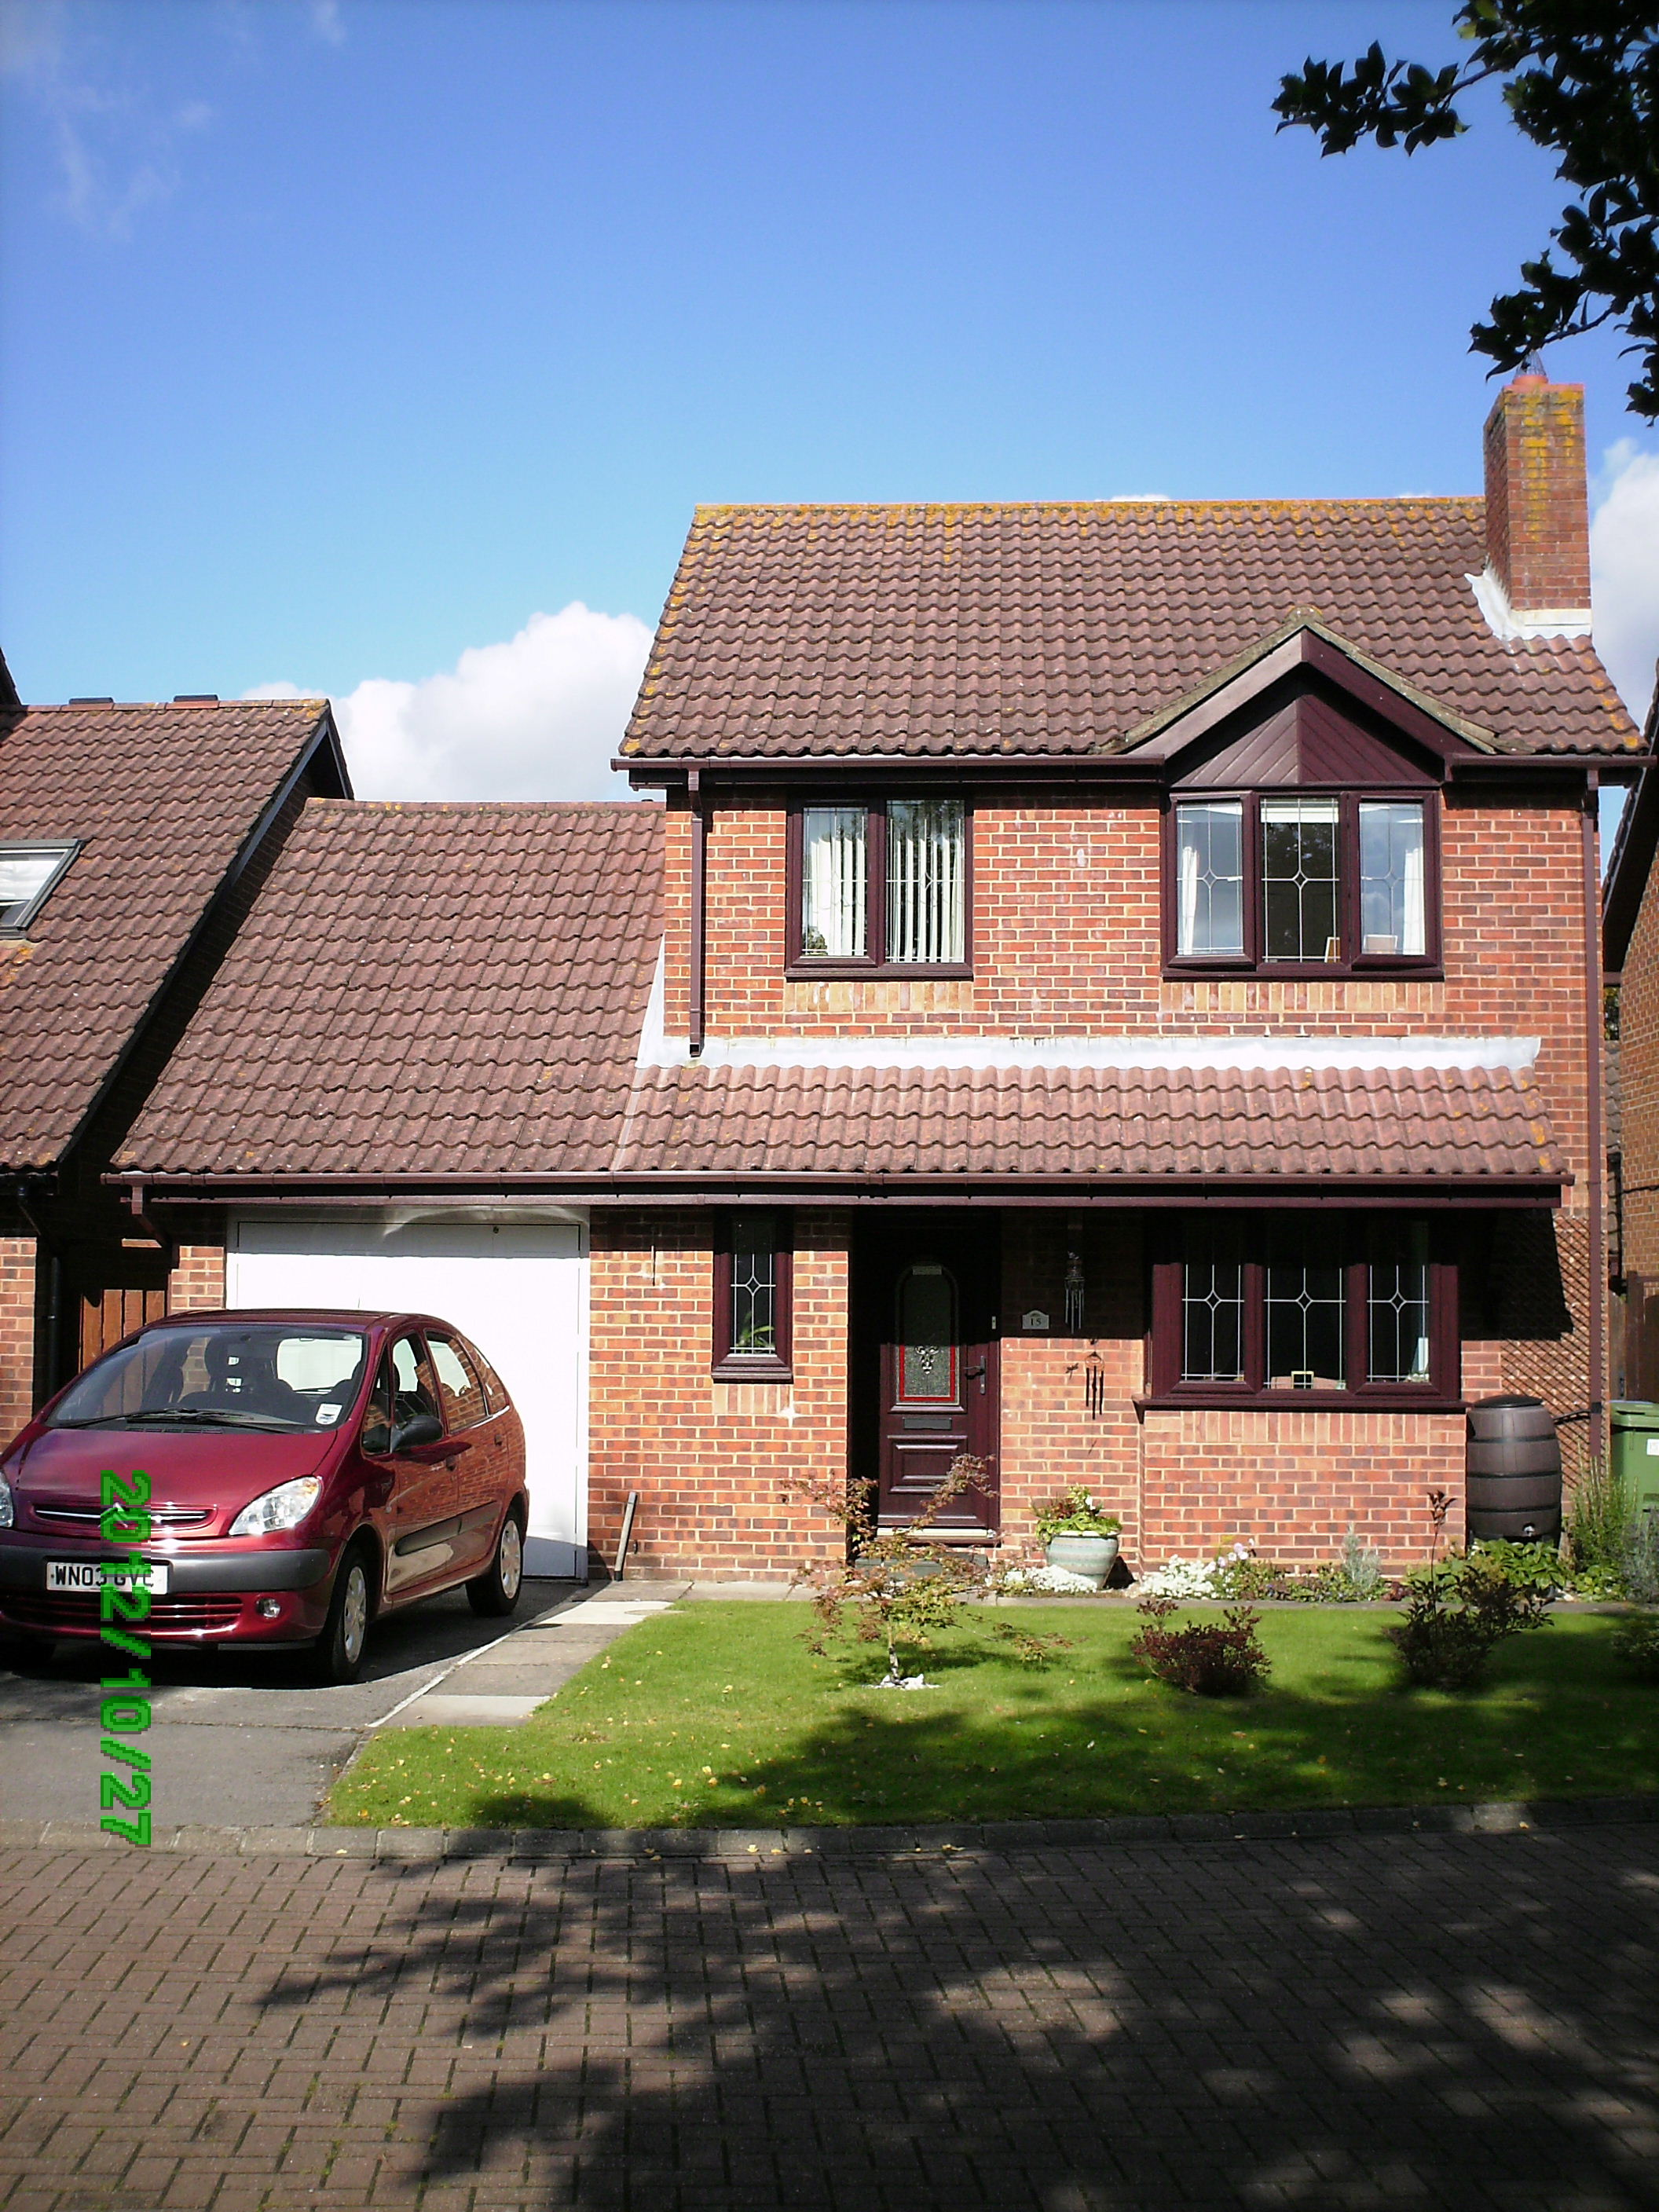 Fully furnished peaceful 2 bedroom detached house in Southern